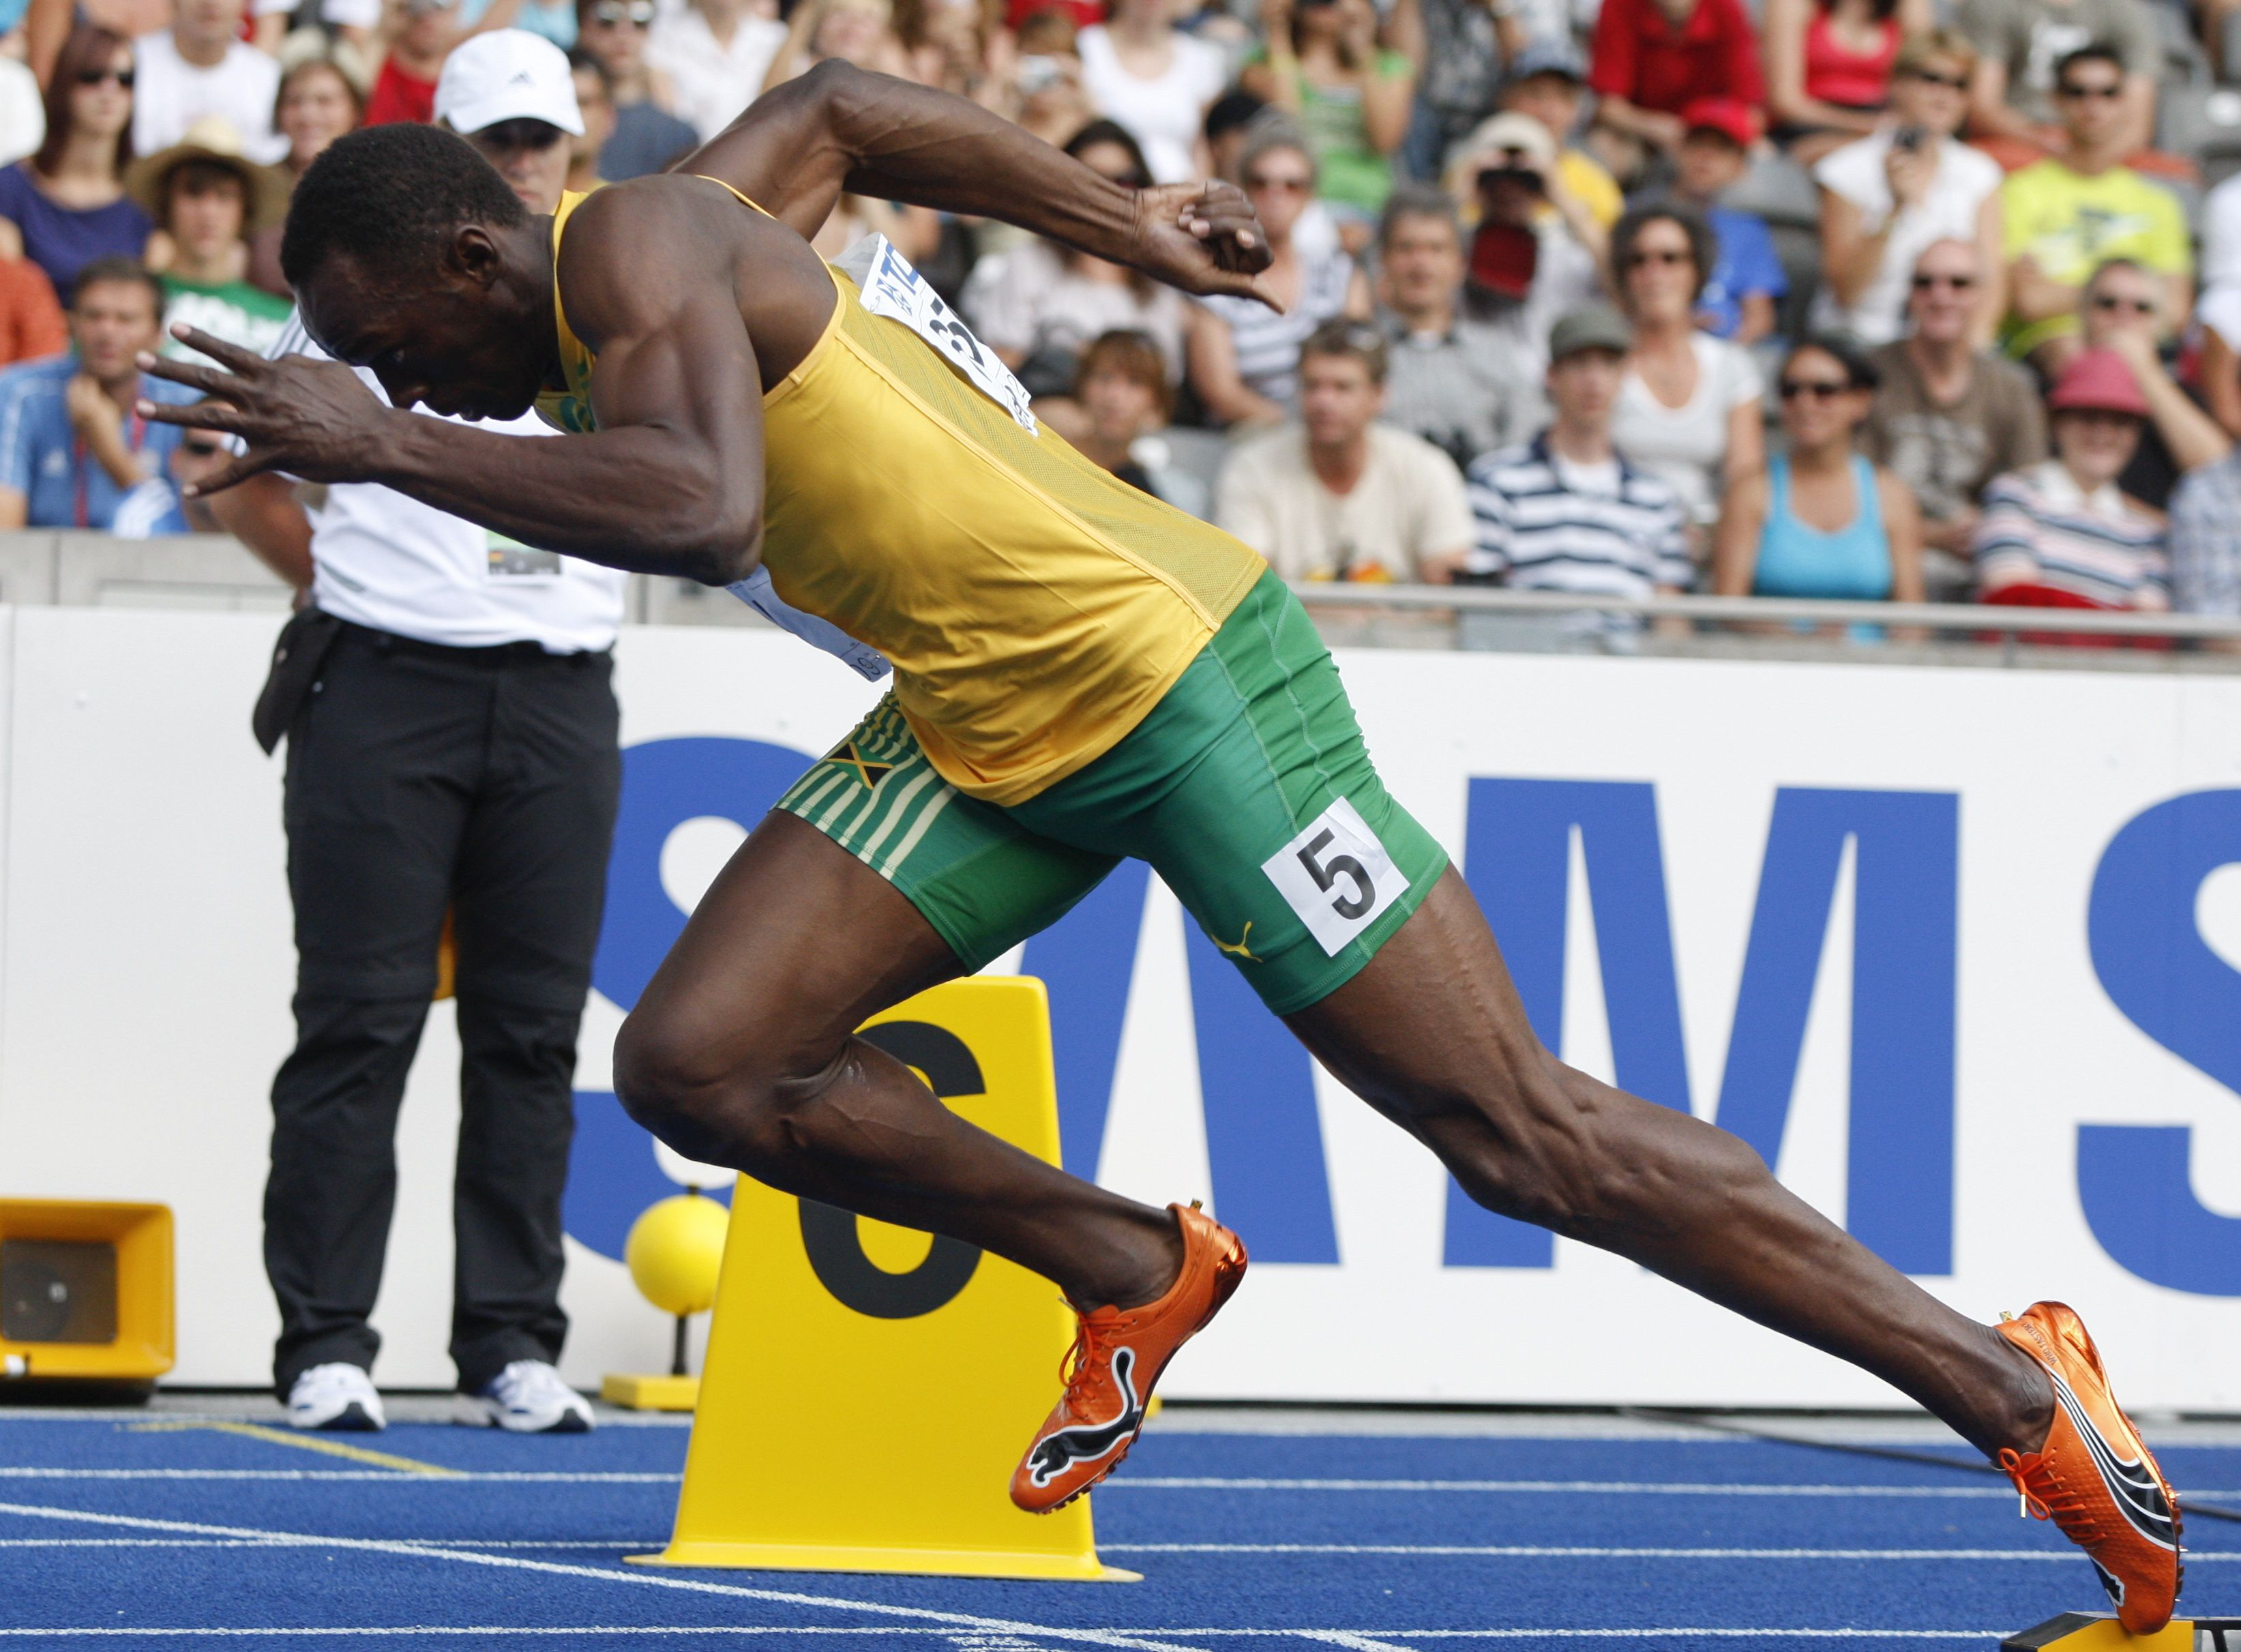 Usain Bolt, the man who got me running in the first place. Tyson Gay